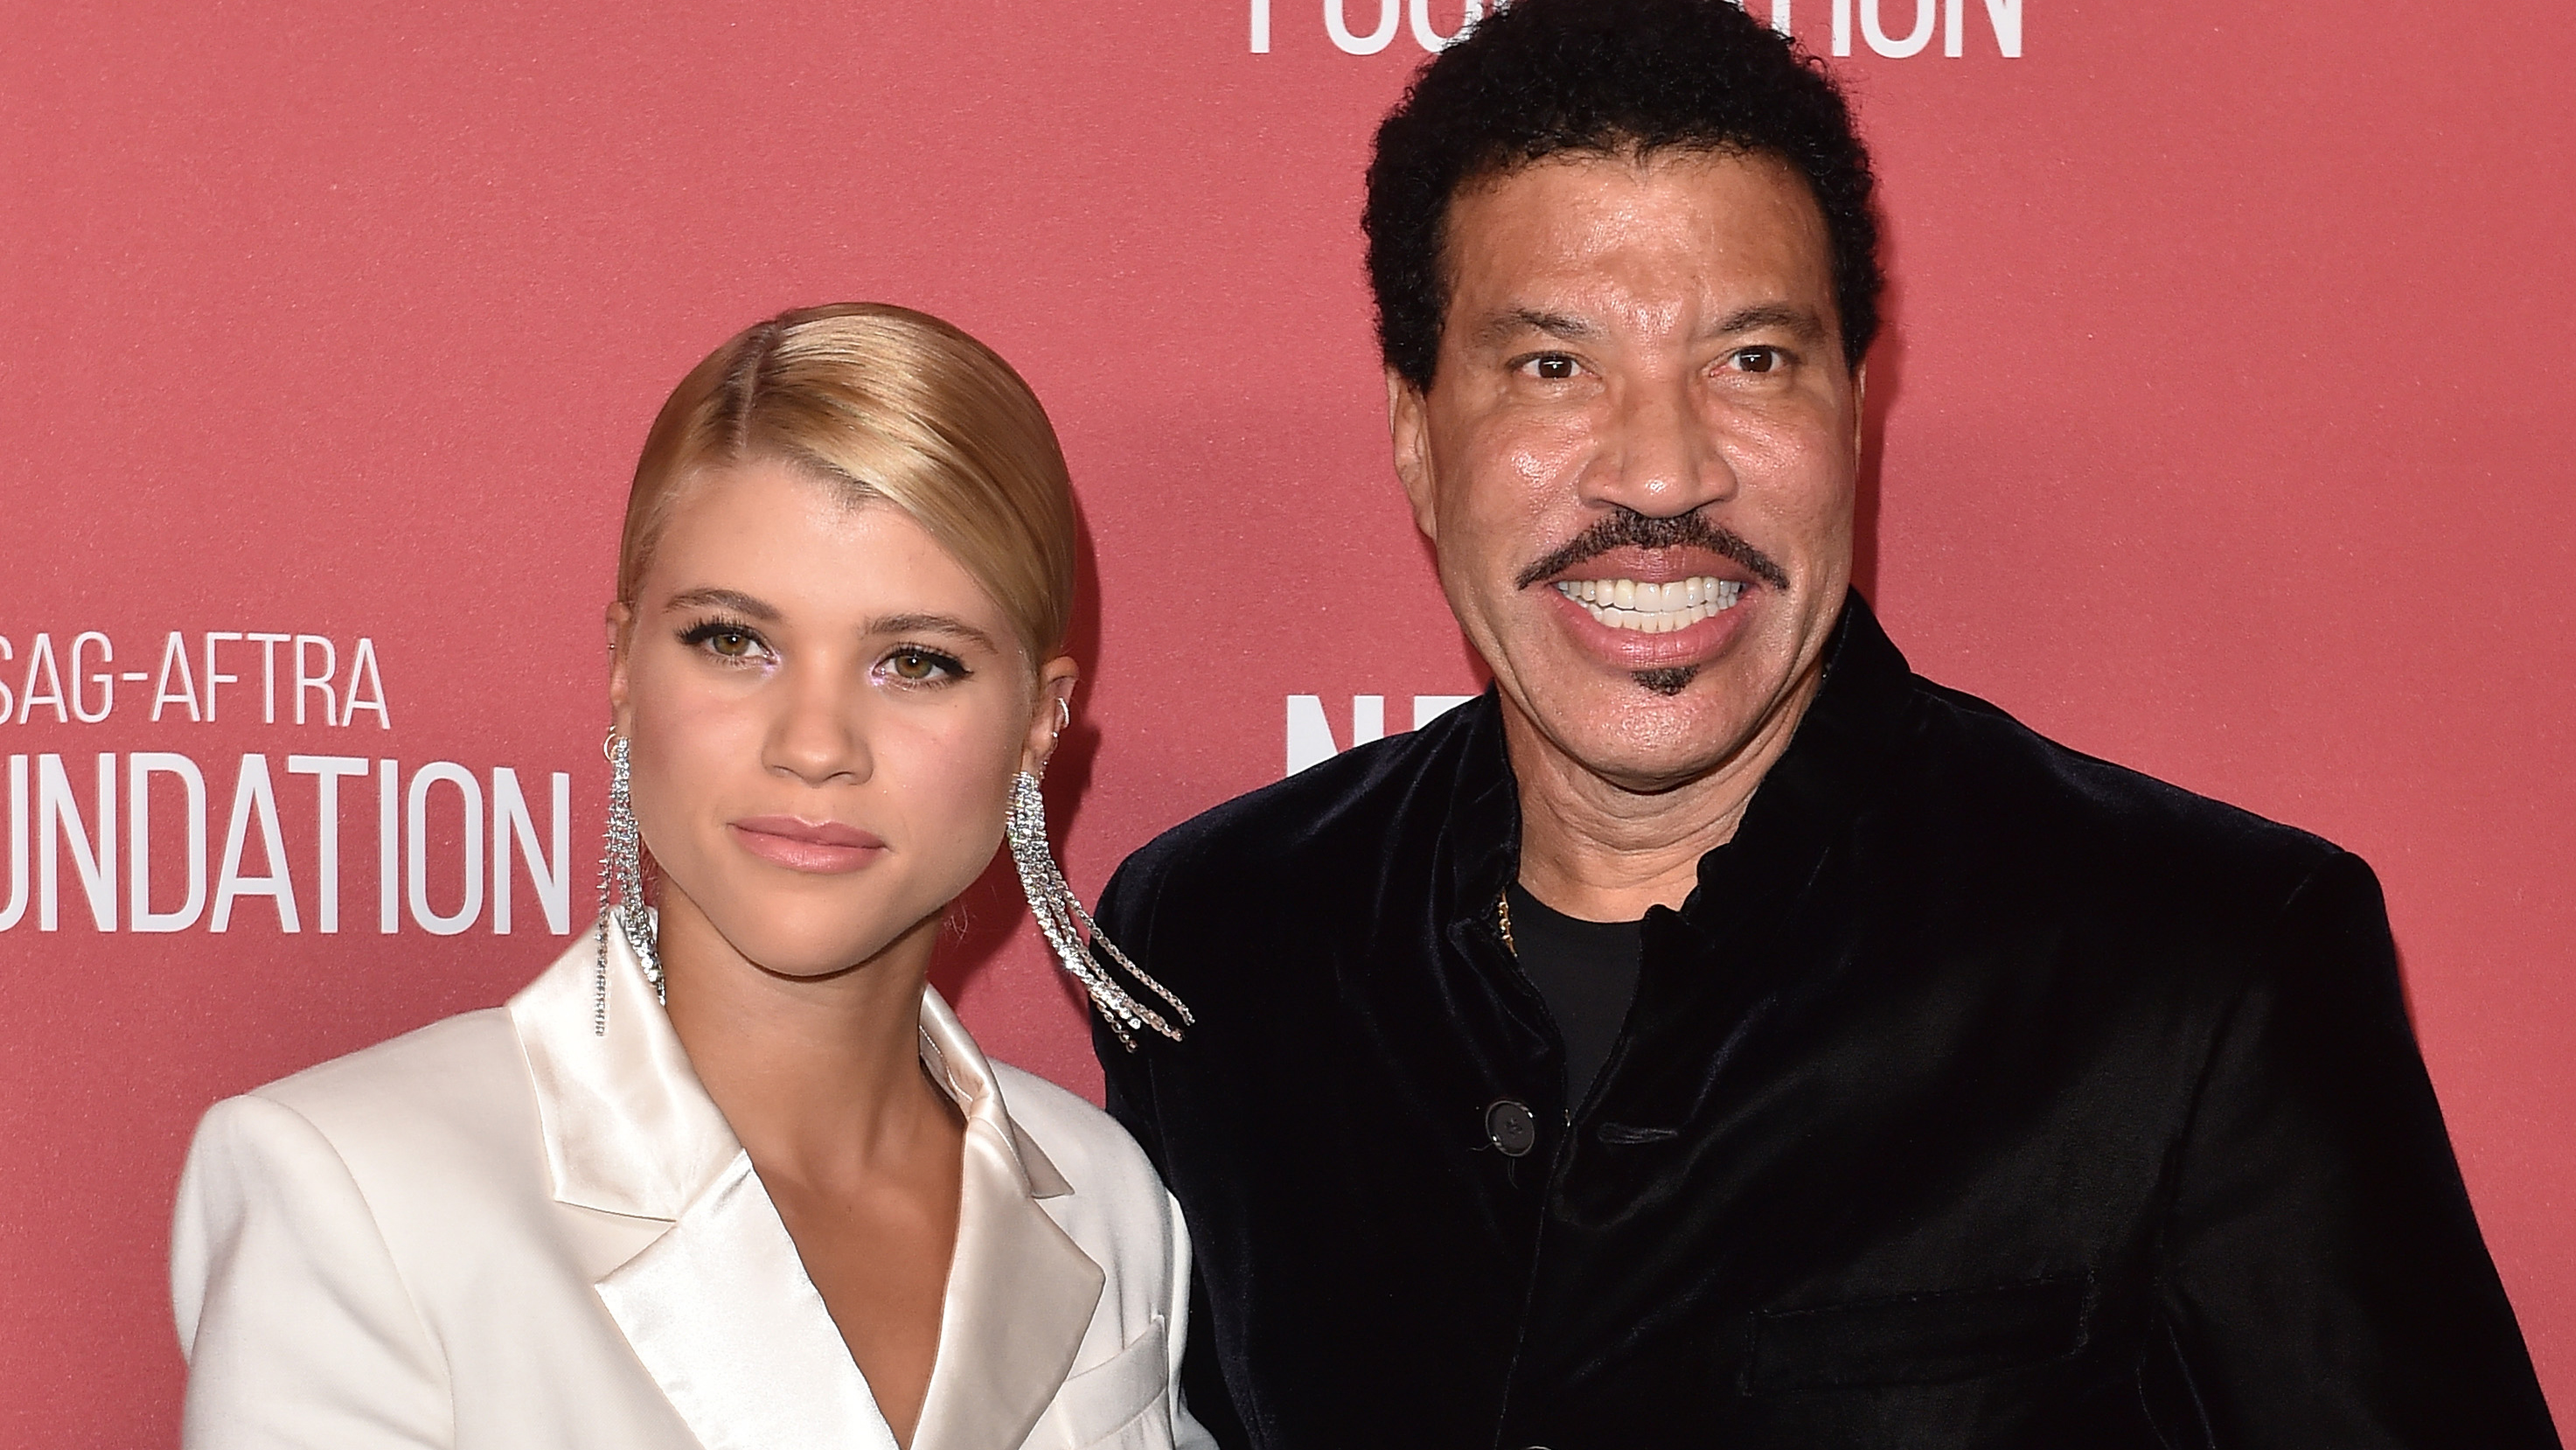 Westlake Legal Group Lionel-Richie-Sofia-Richie Lionel Richie wishes 'lots of failure' for daughter Sofia Richie Nate Day fox-news/entertainment/music fox-news/entertainment/celebrity-news fox-news/entertainment fox news fnc/entertainment fnc bd6f0834-8d09-5cbf-818f-c3dd18c6b817 article